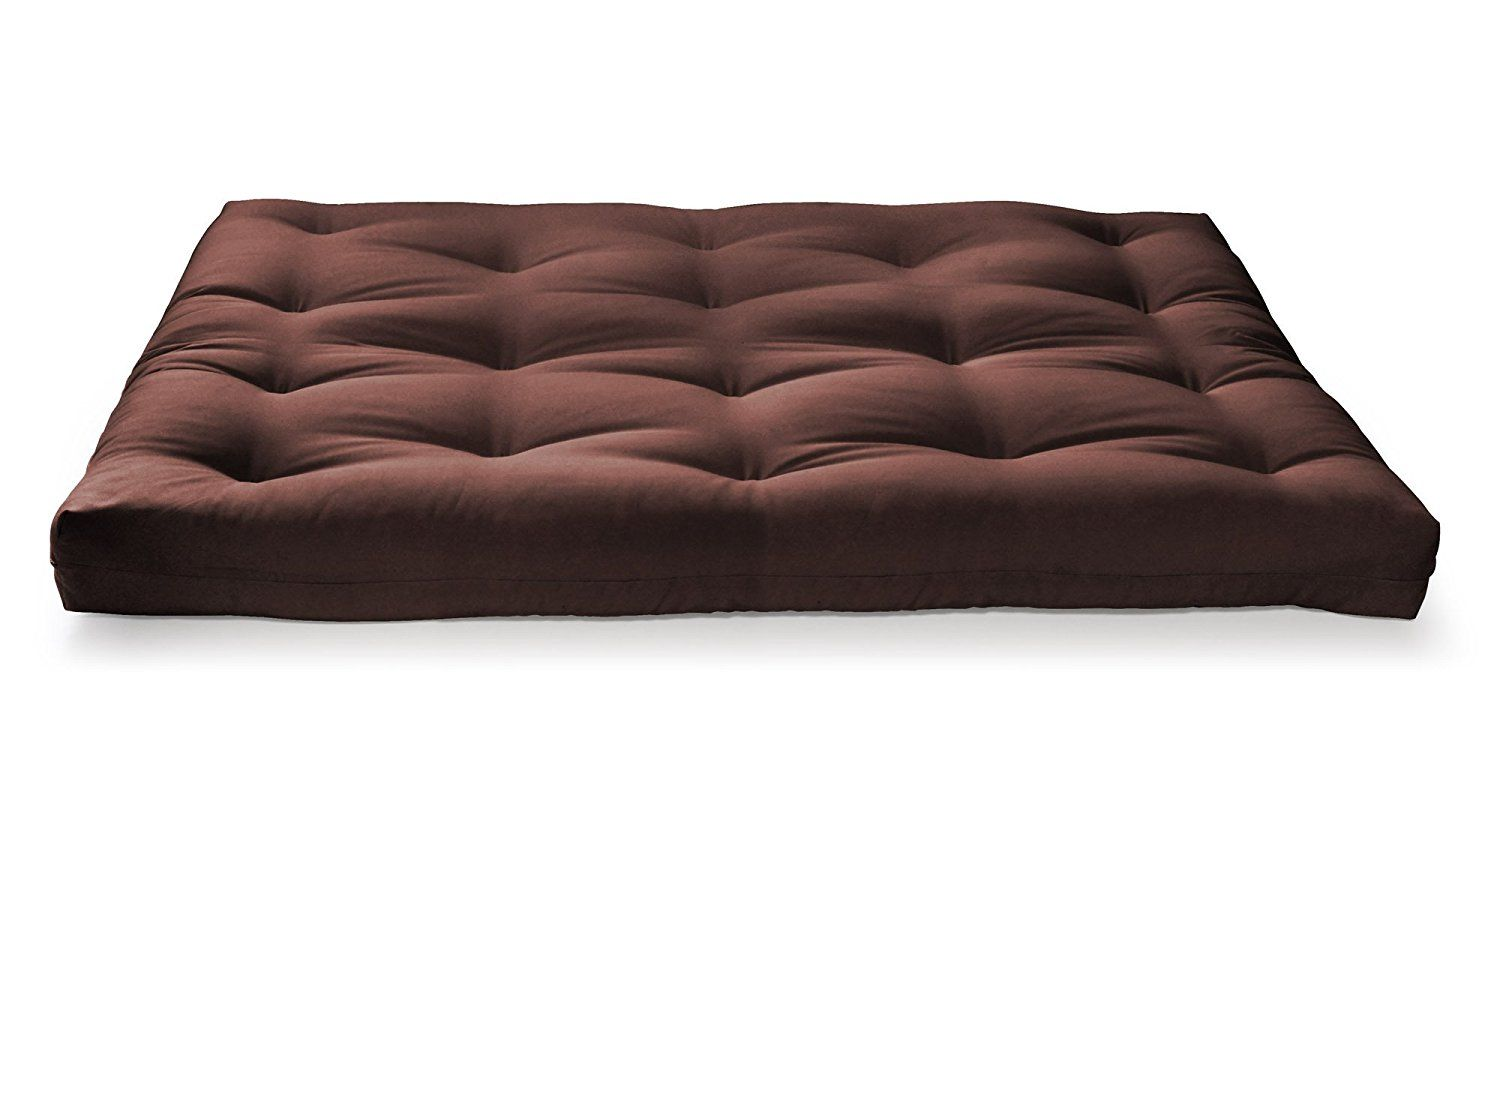 Amazon.com: Artiva USA Home Deluxe 8-Inch Futon Sofa Mattress Made in US Best Quality, Full, Solid, Espresso/ Brown: Kitchen & Dining